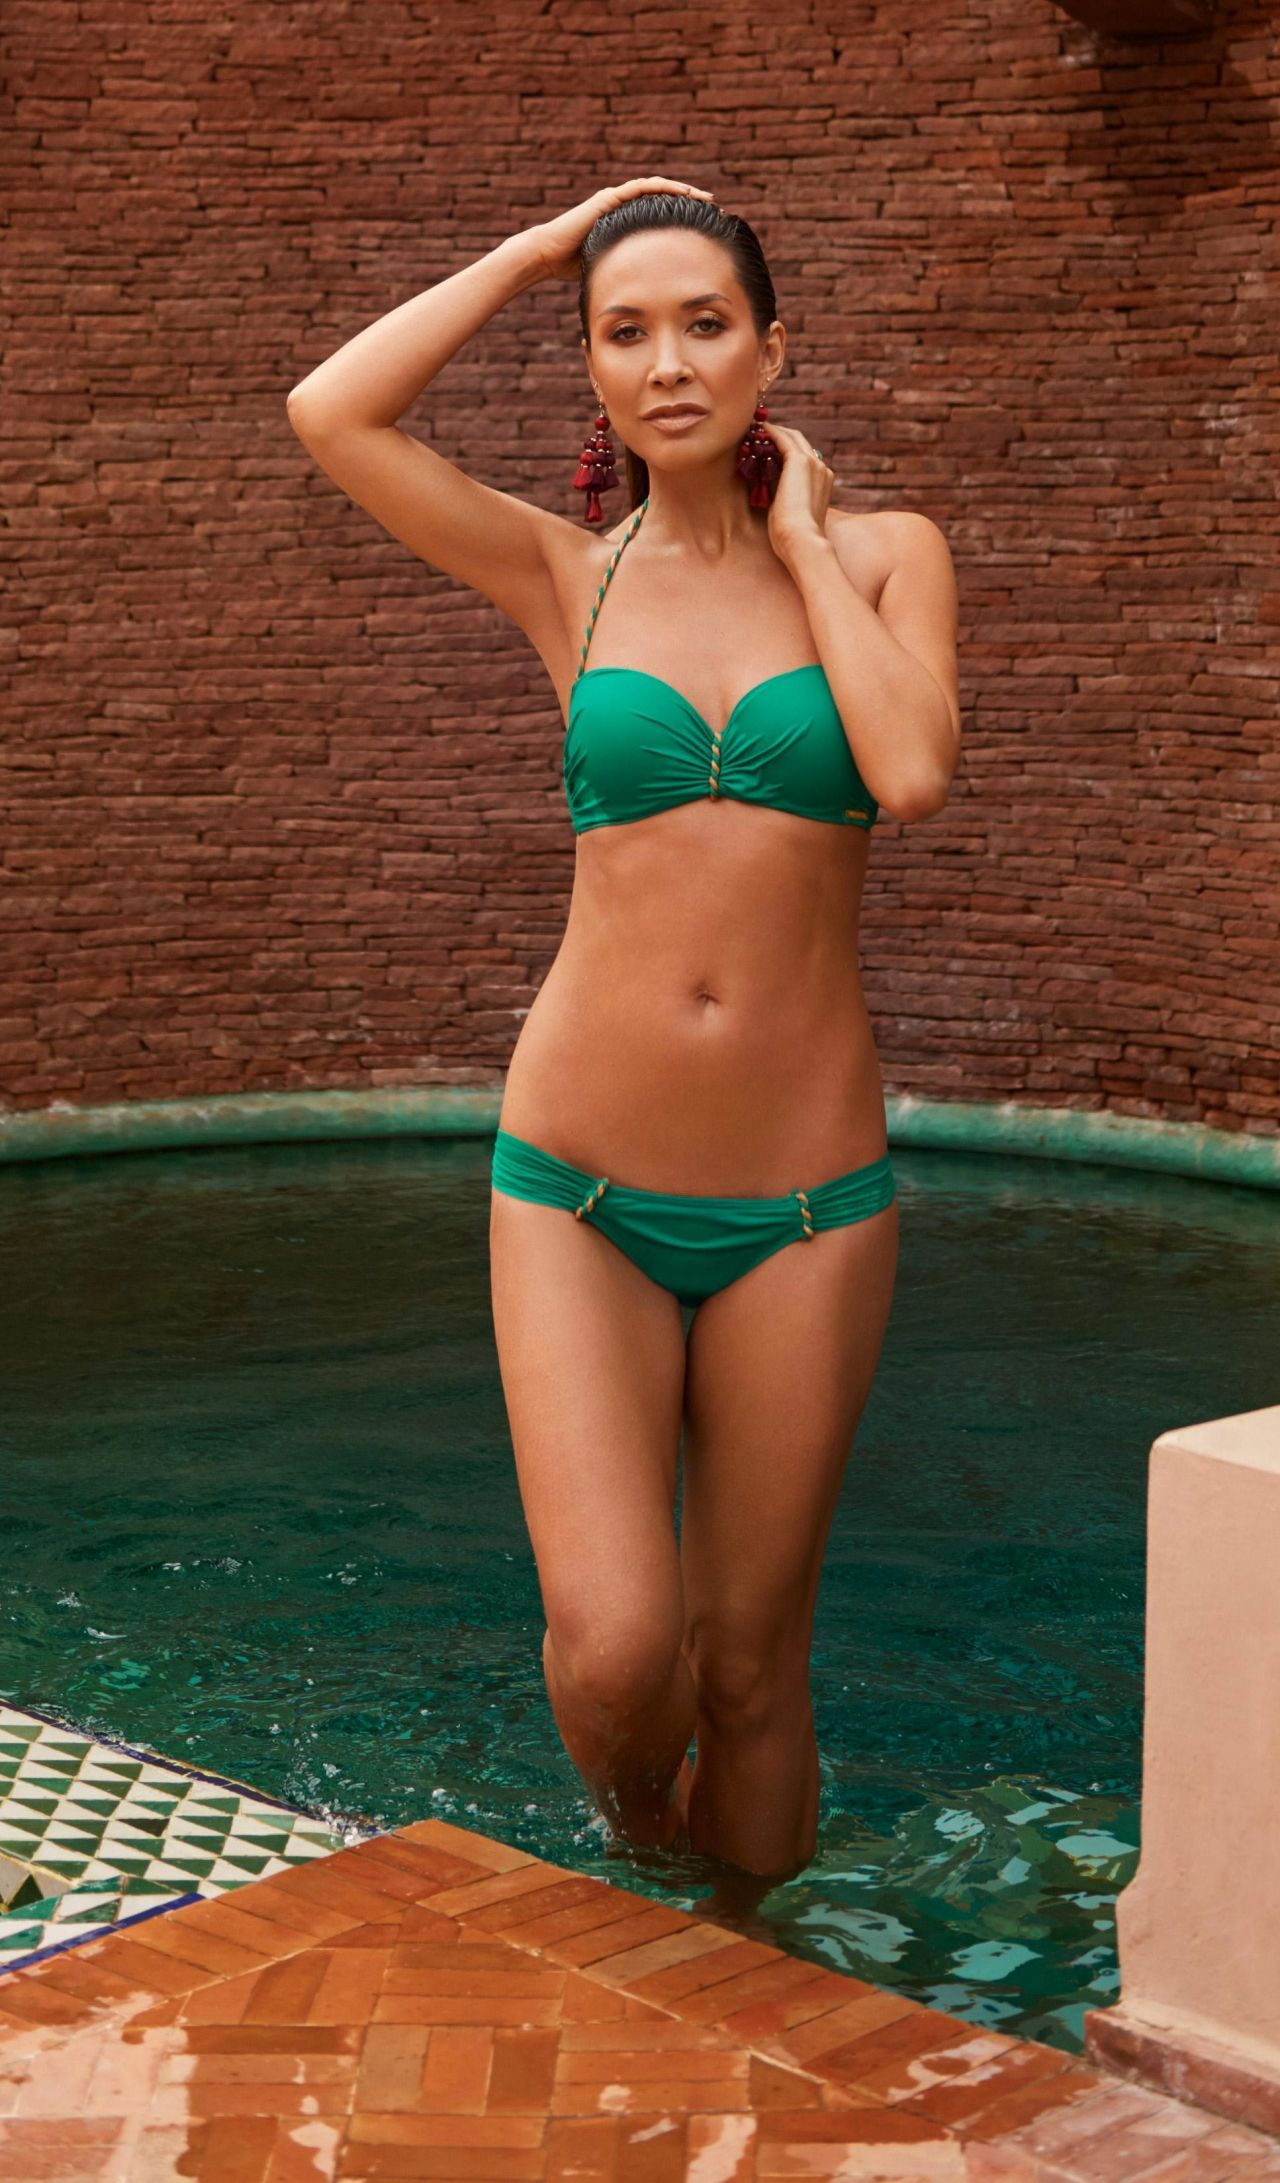 Possible fill myleene klass bikini pictures variant